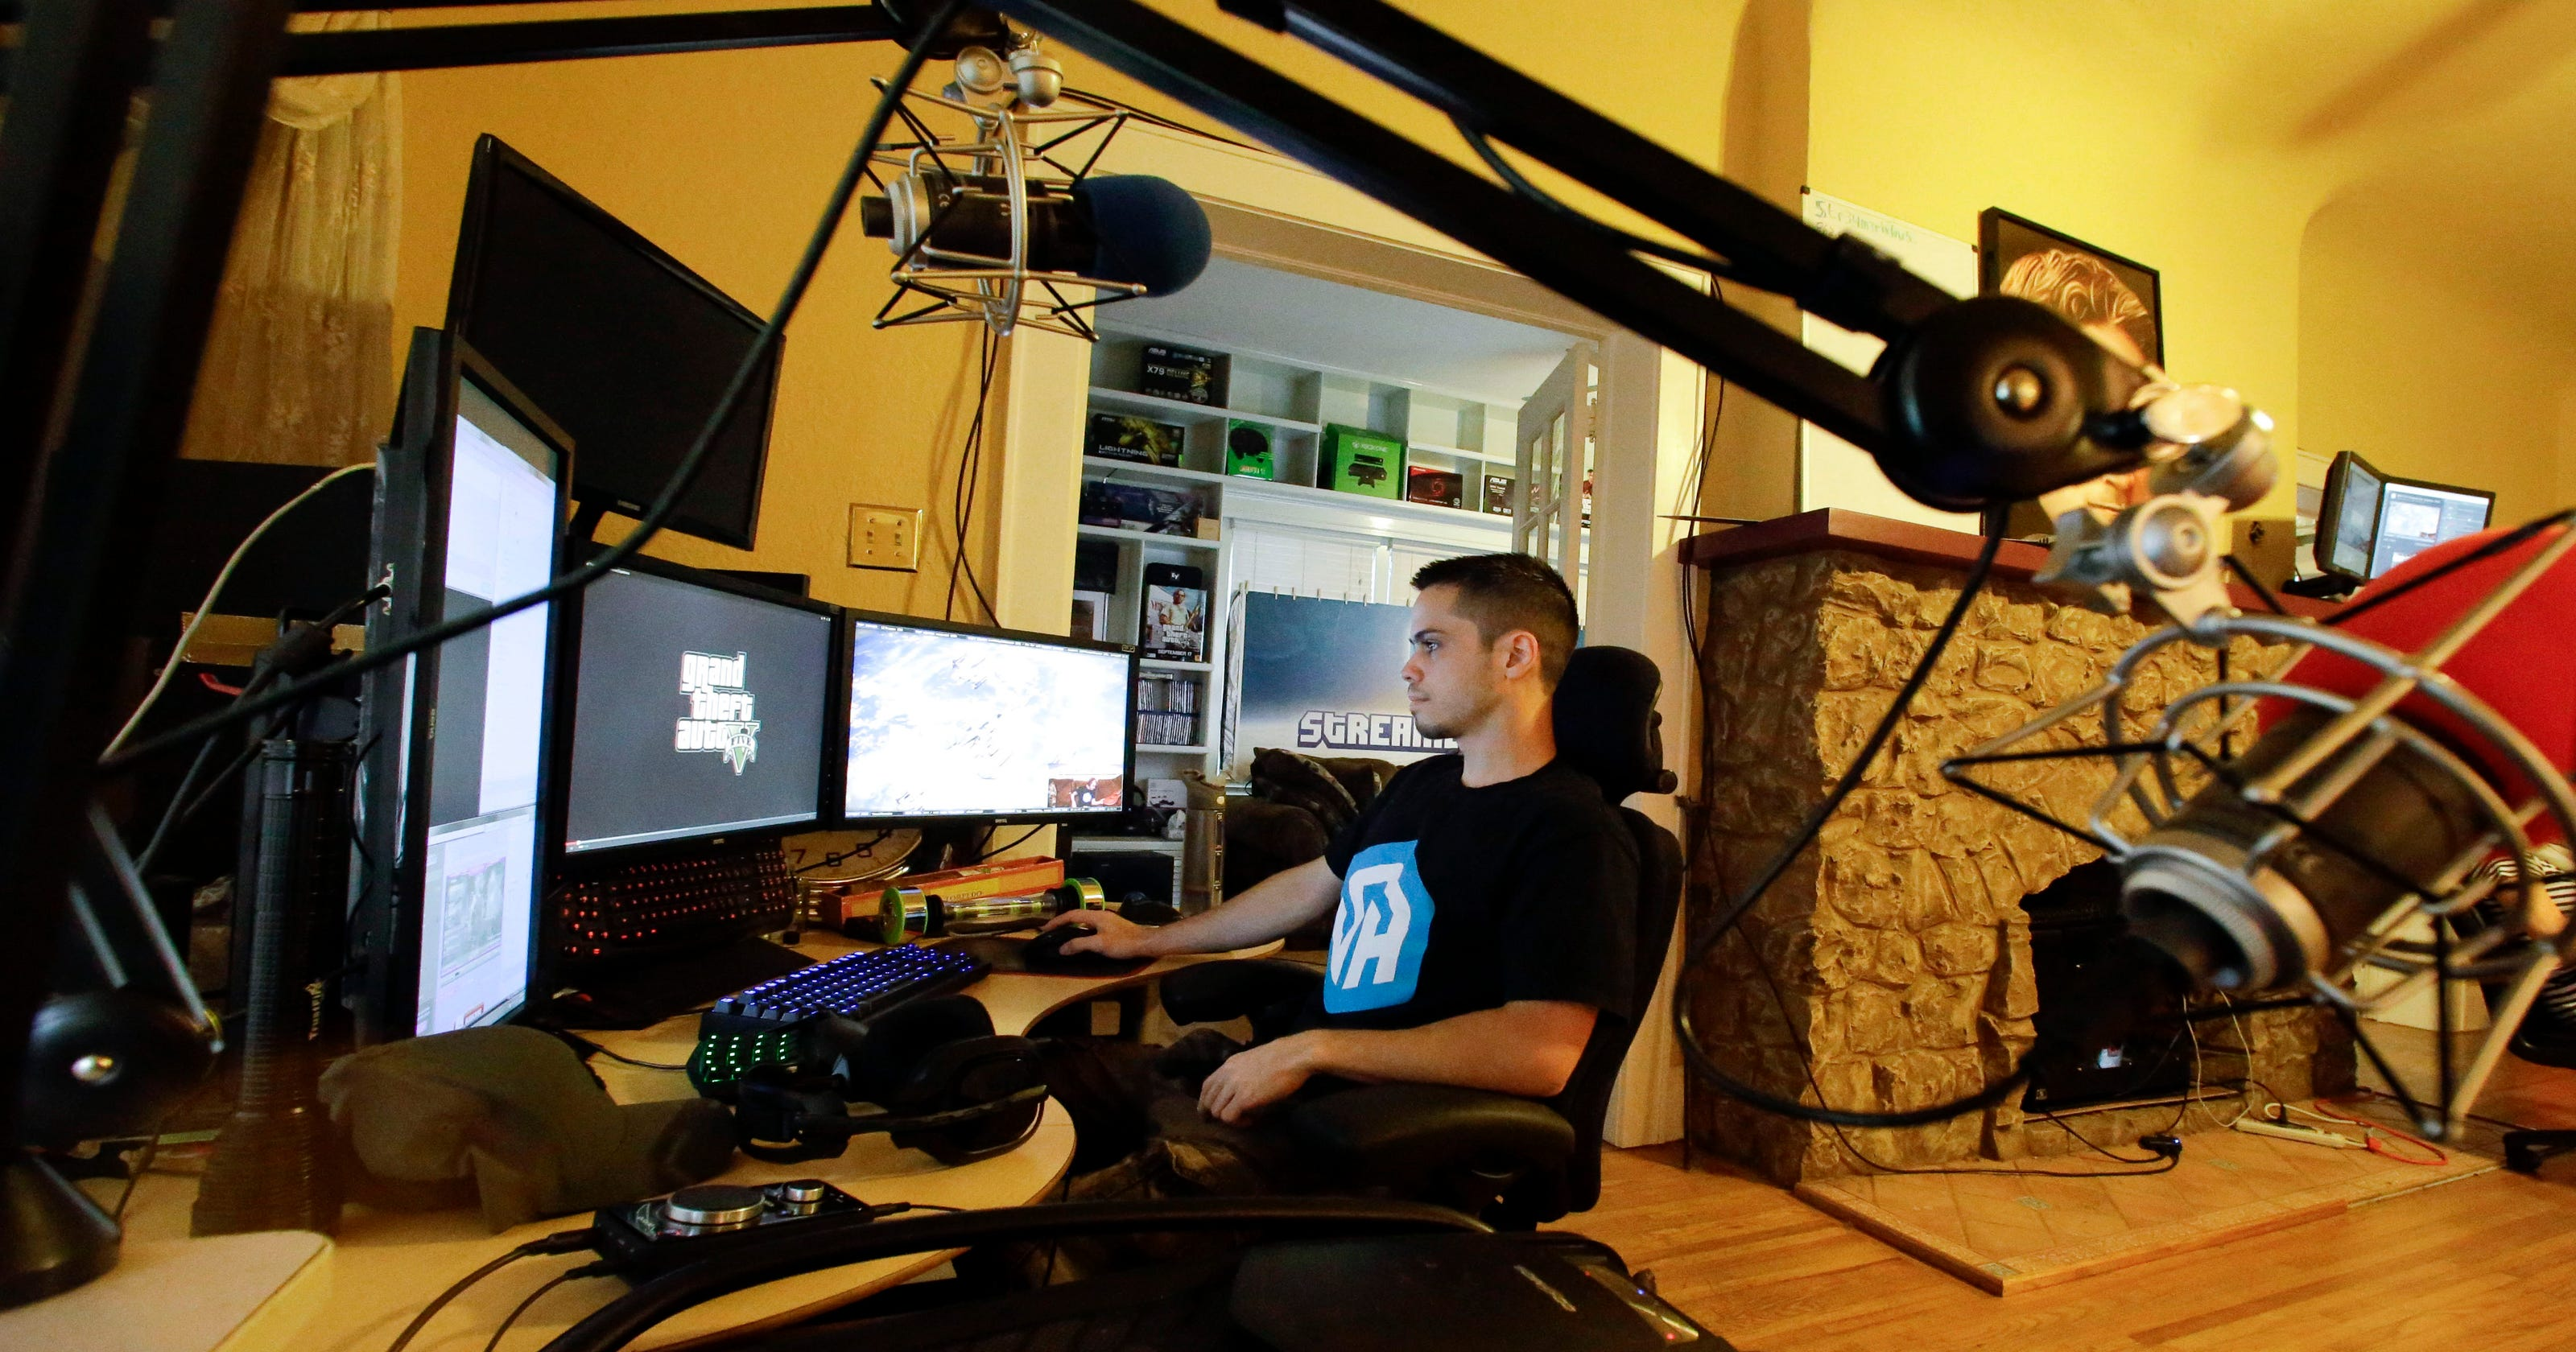 Playing video games turns into career